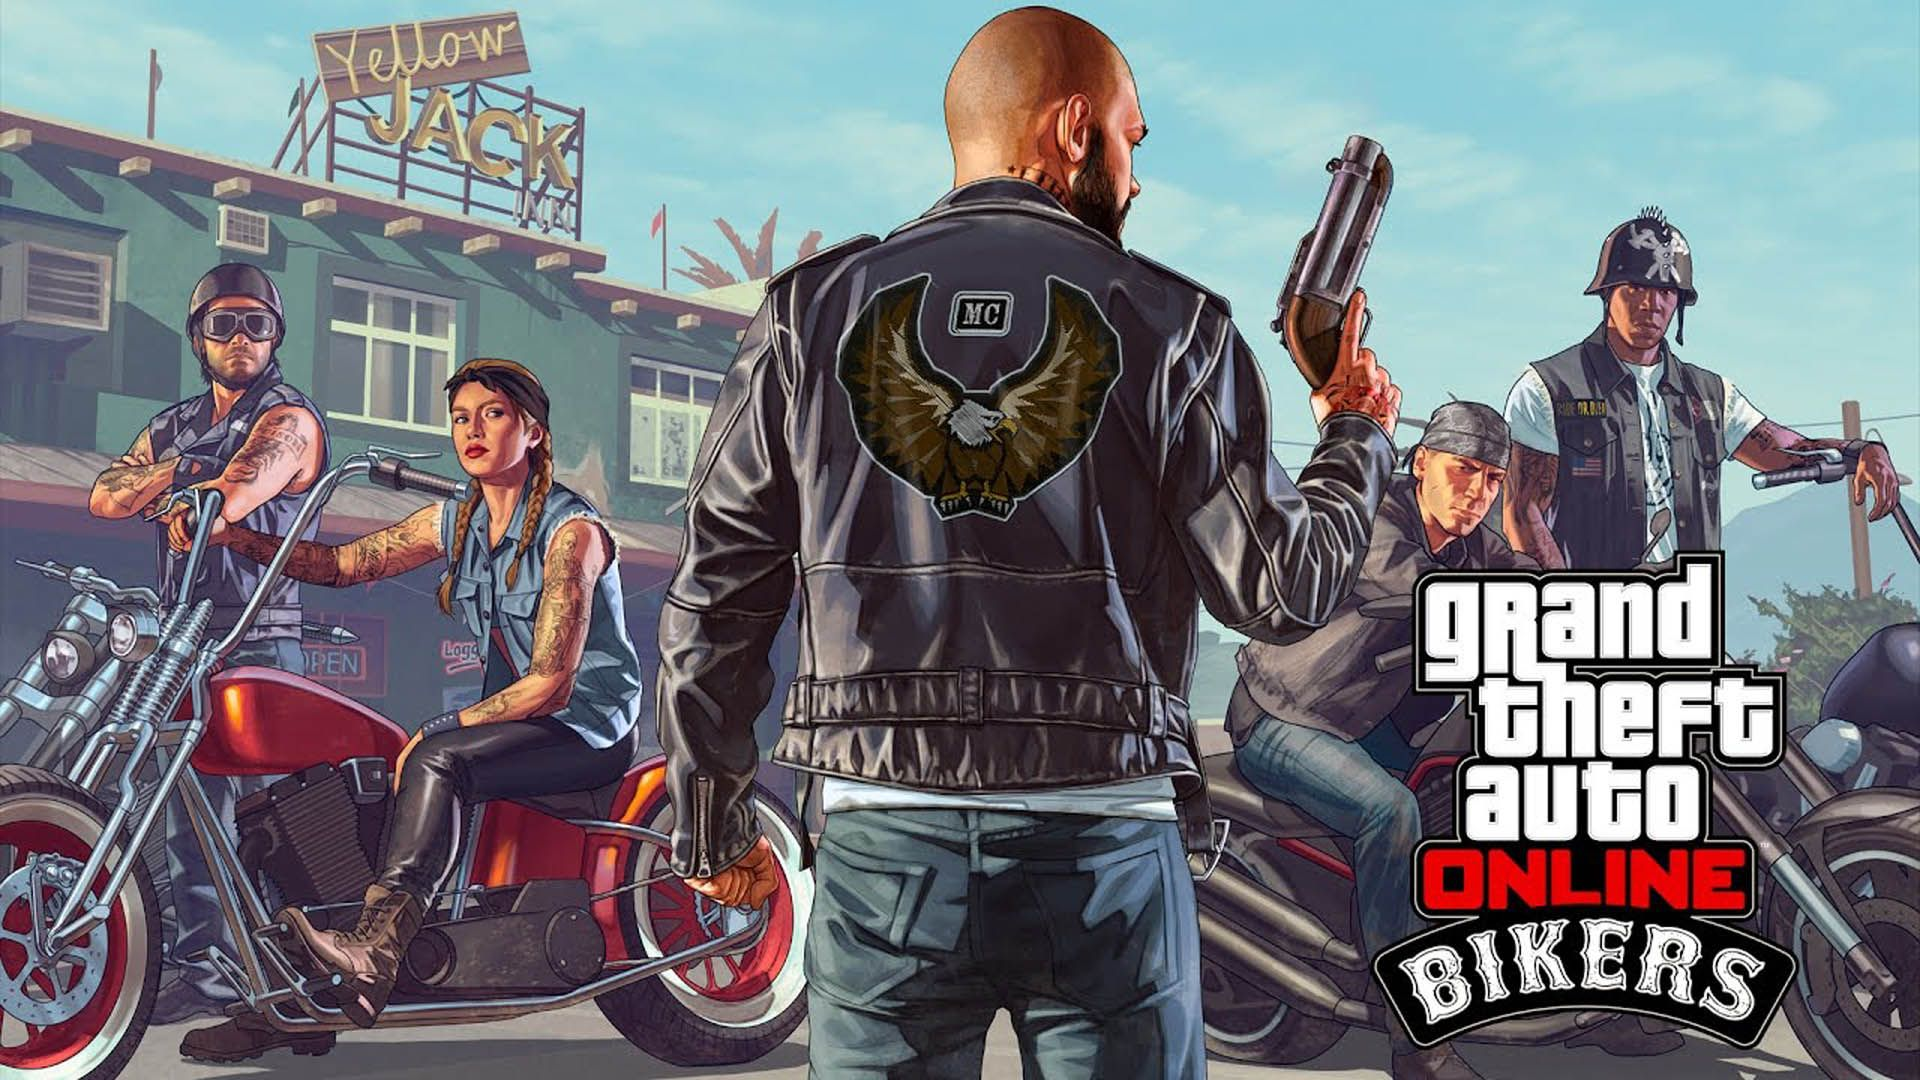 bikers - gta 5 online update dlc 1920x1080 wallpaper | boy | grand